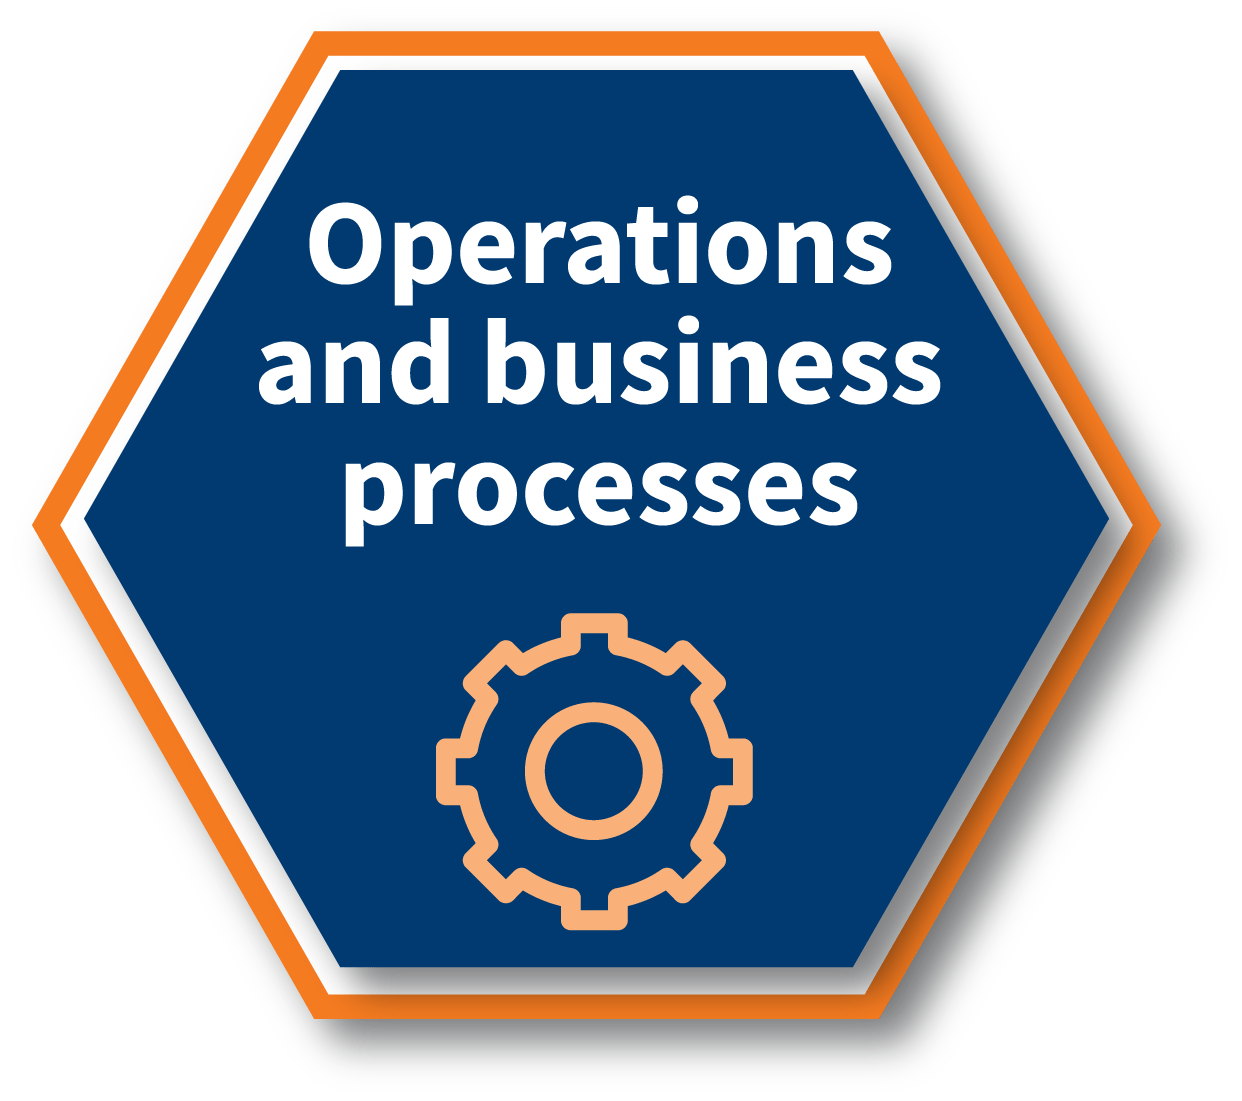 Operations and business procedures